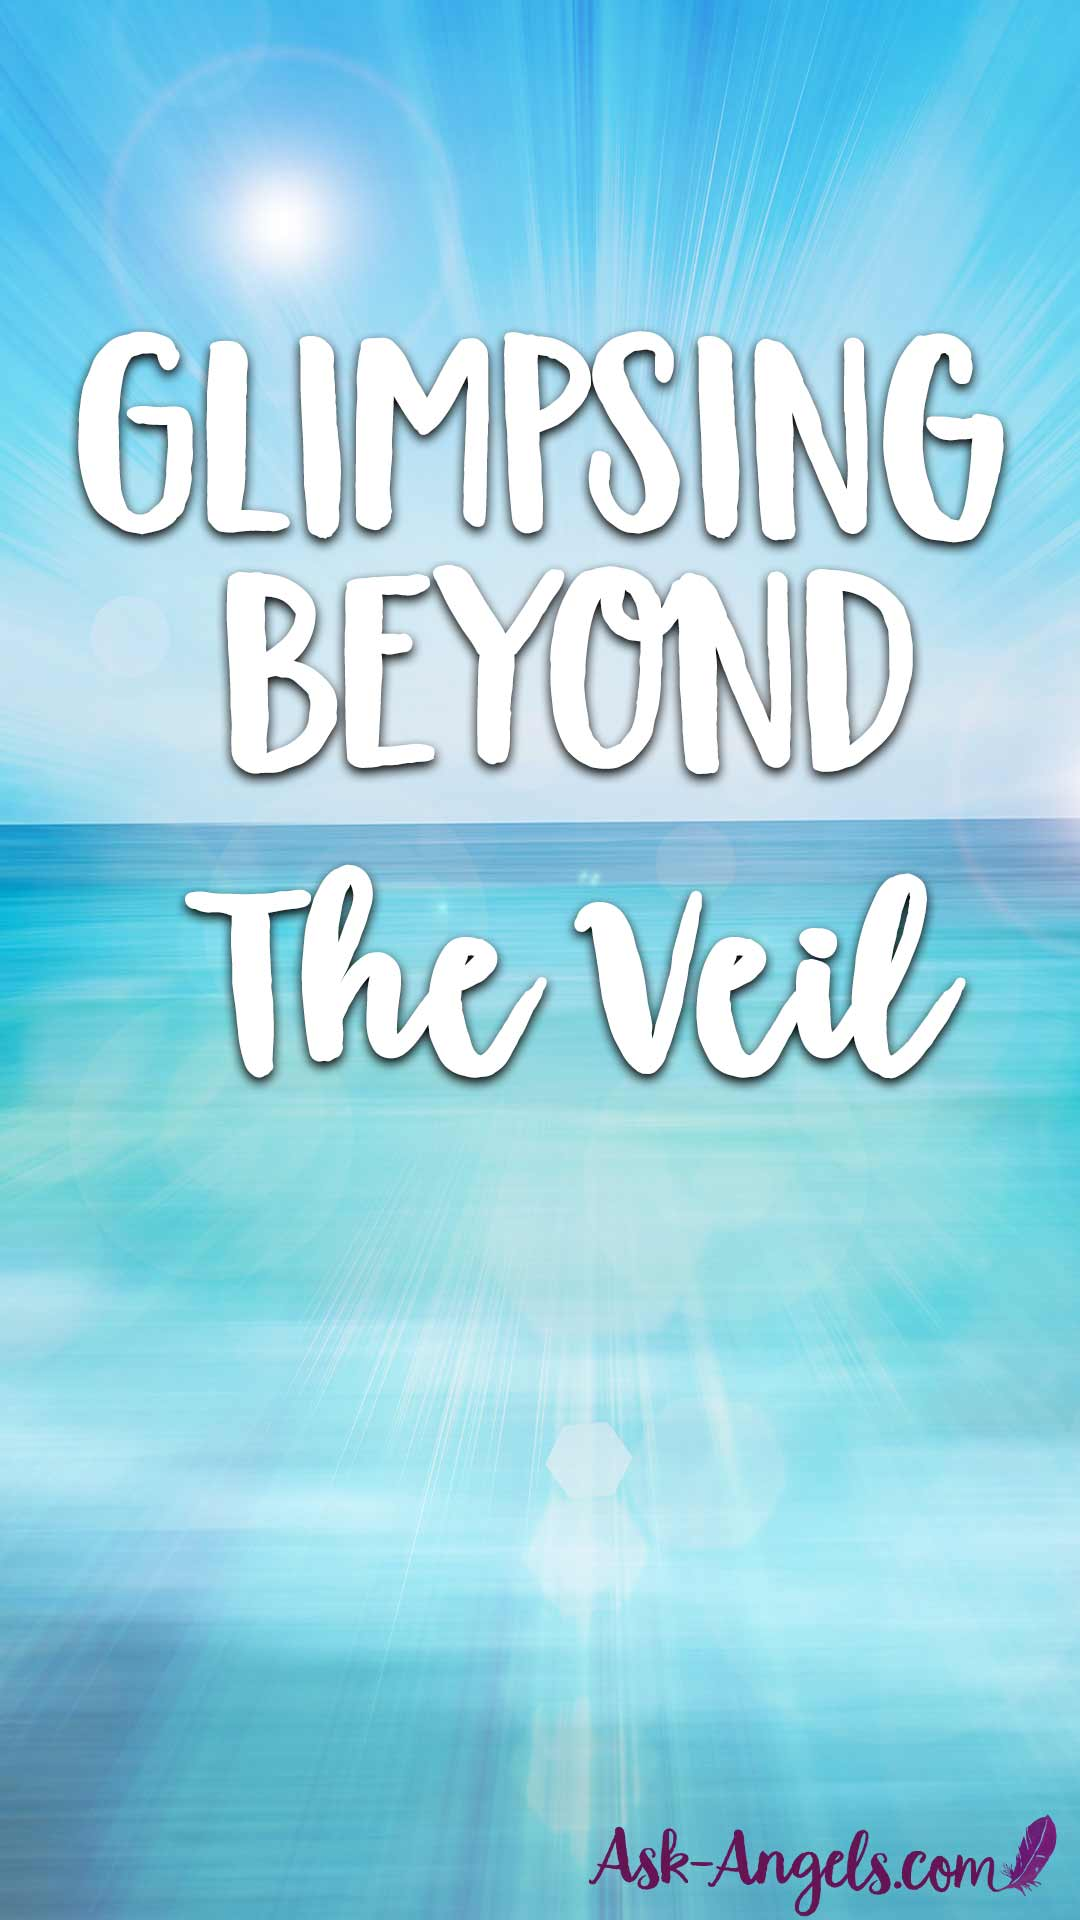 The Veil is Thin and Getting Thinner... Learn what this means and how to glimpse beyond The Veil here now!